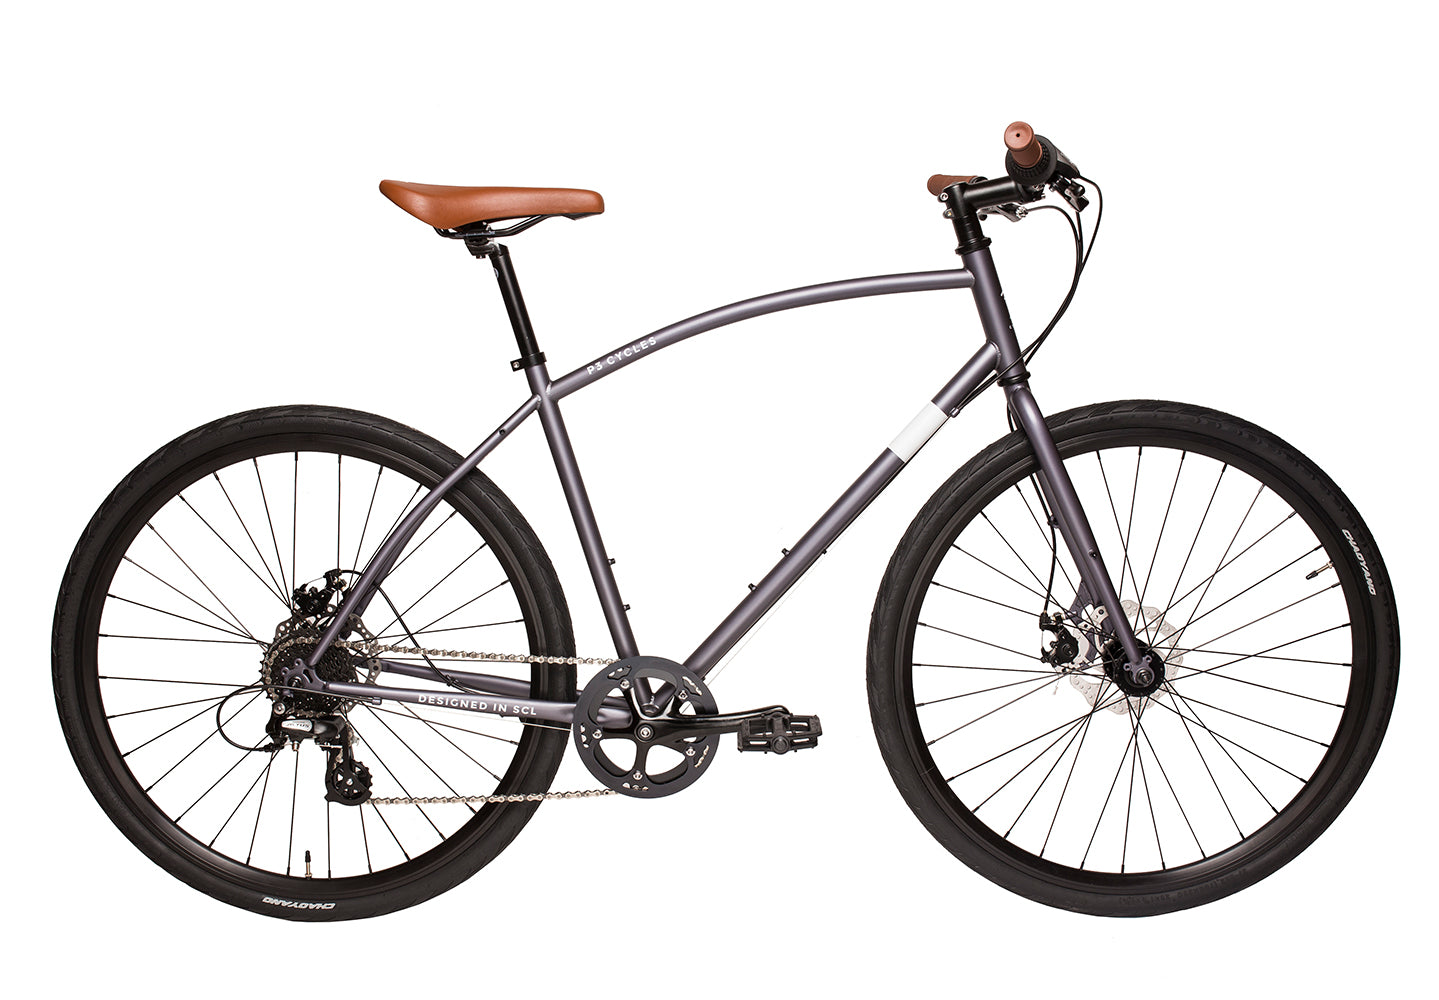 Hibrida Gris - P3 Cycles